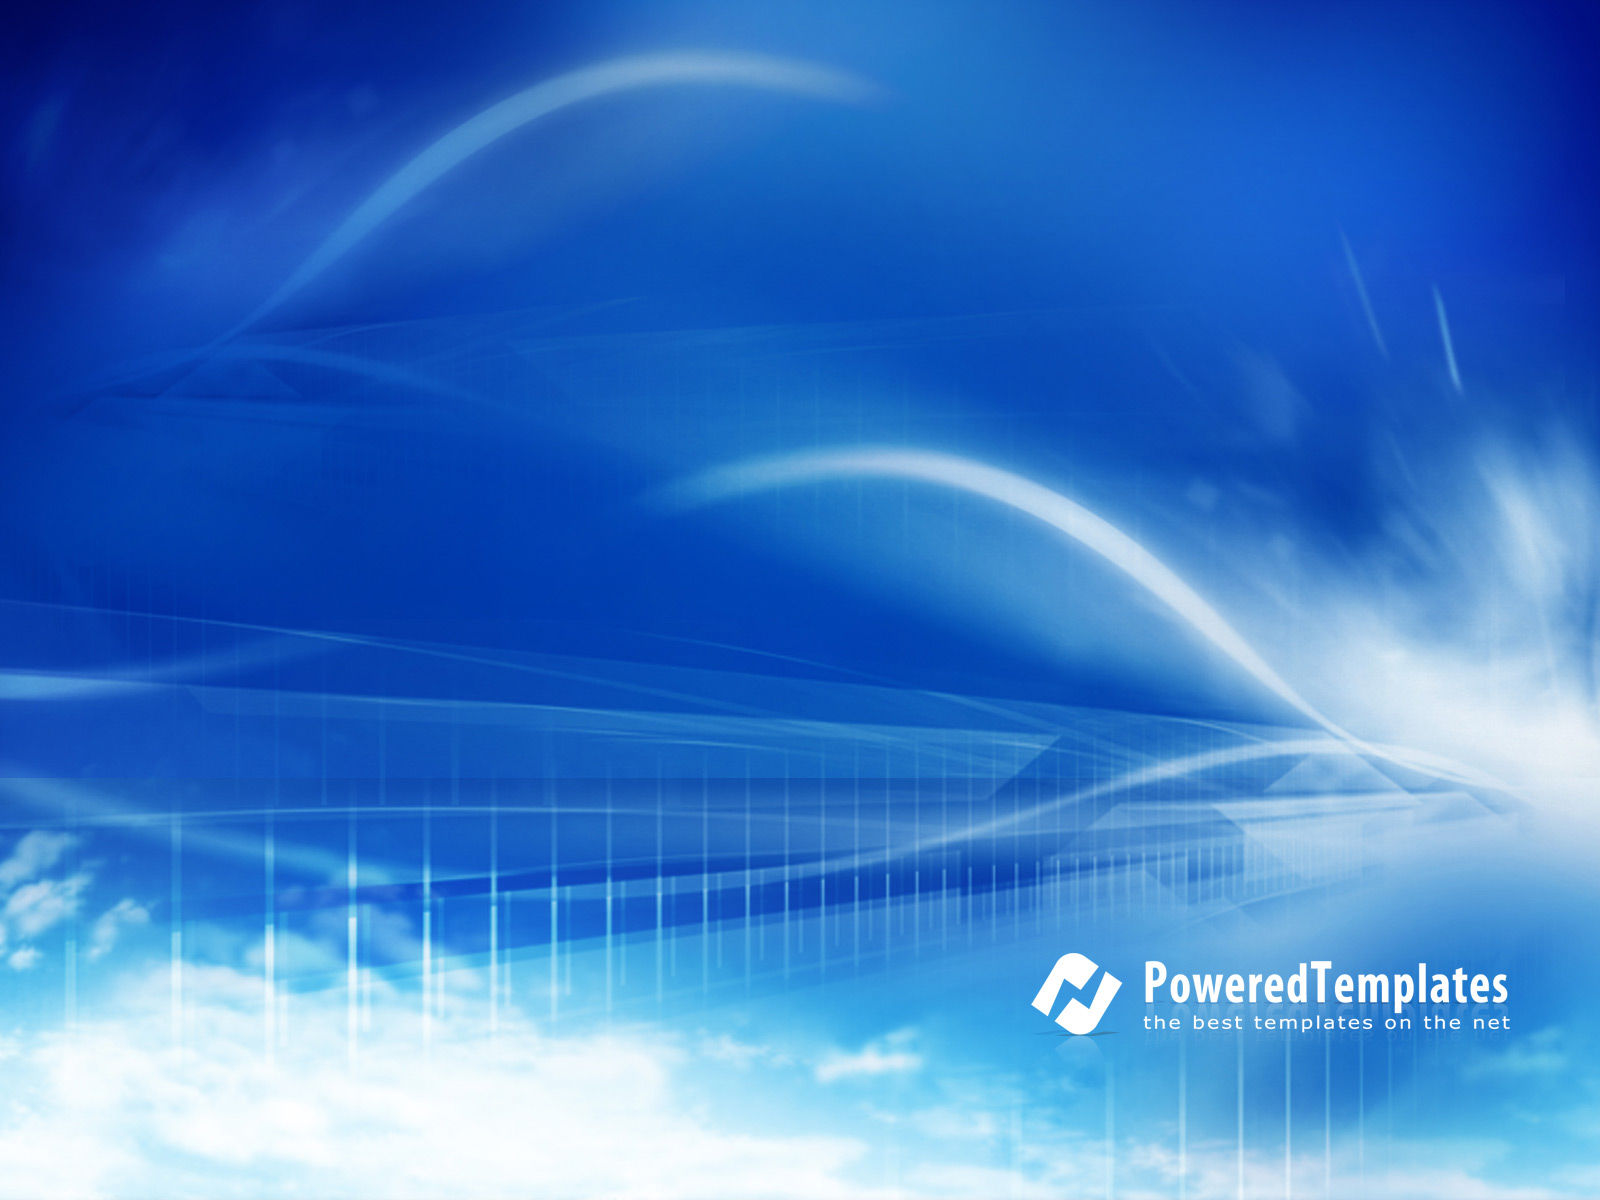 download free perfect wallpapers and backgrounds for your